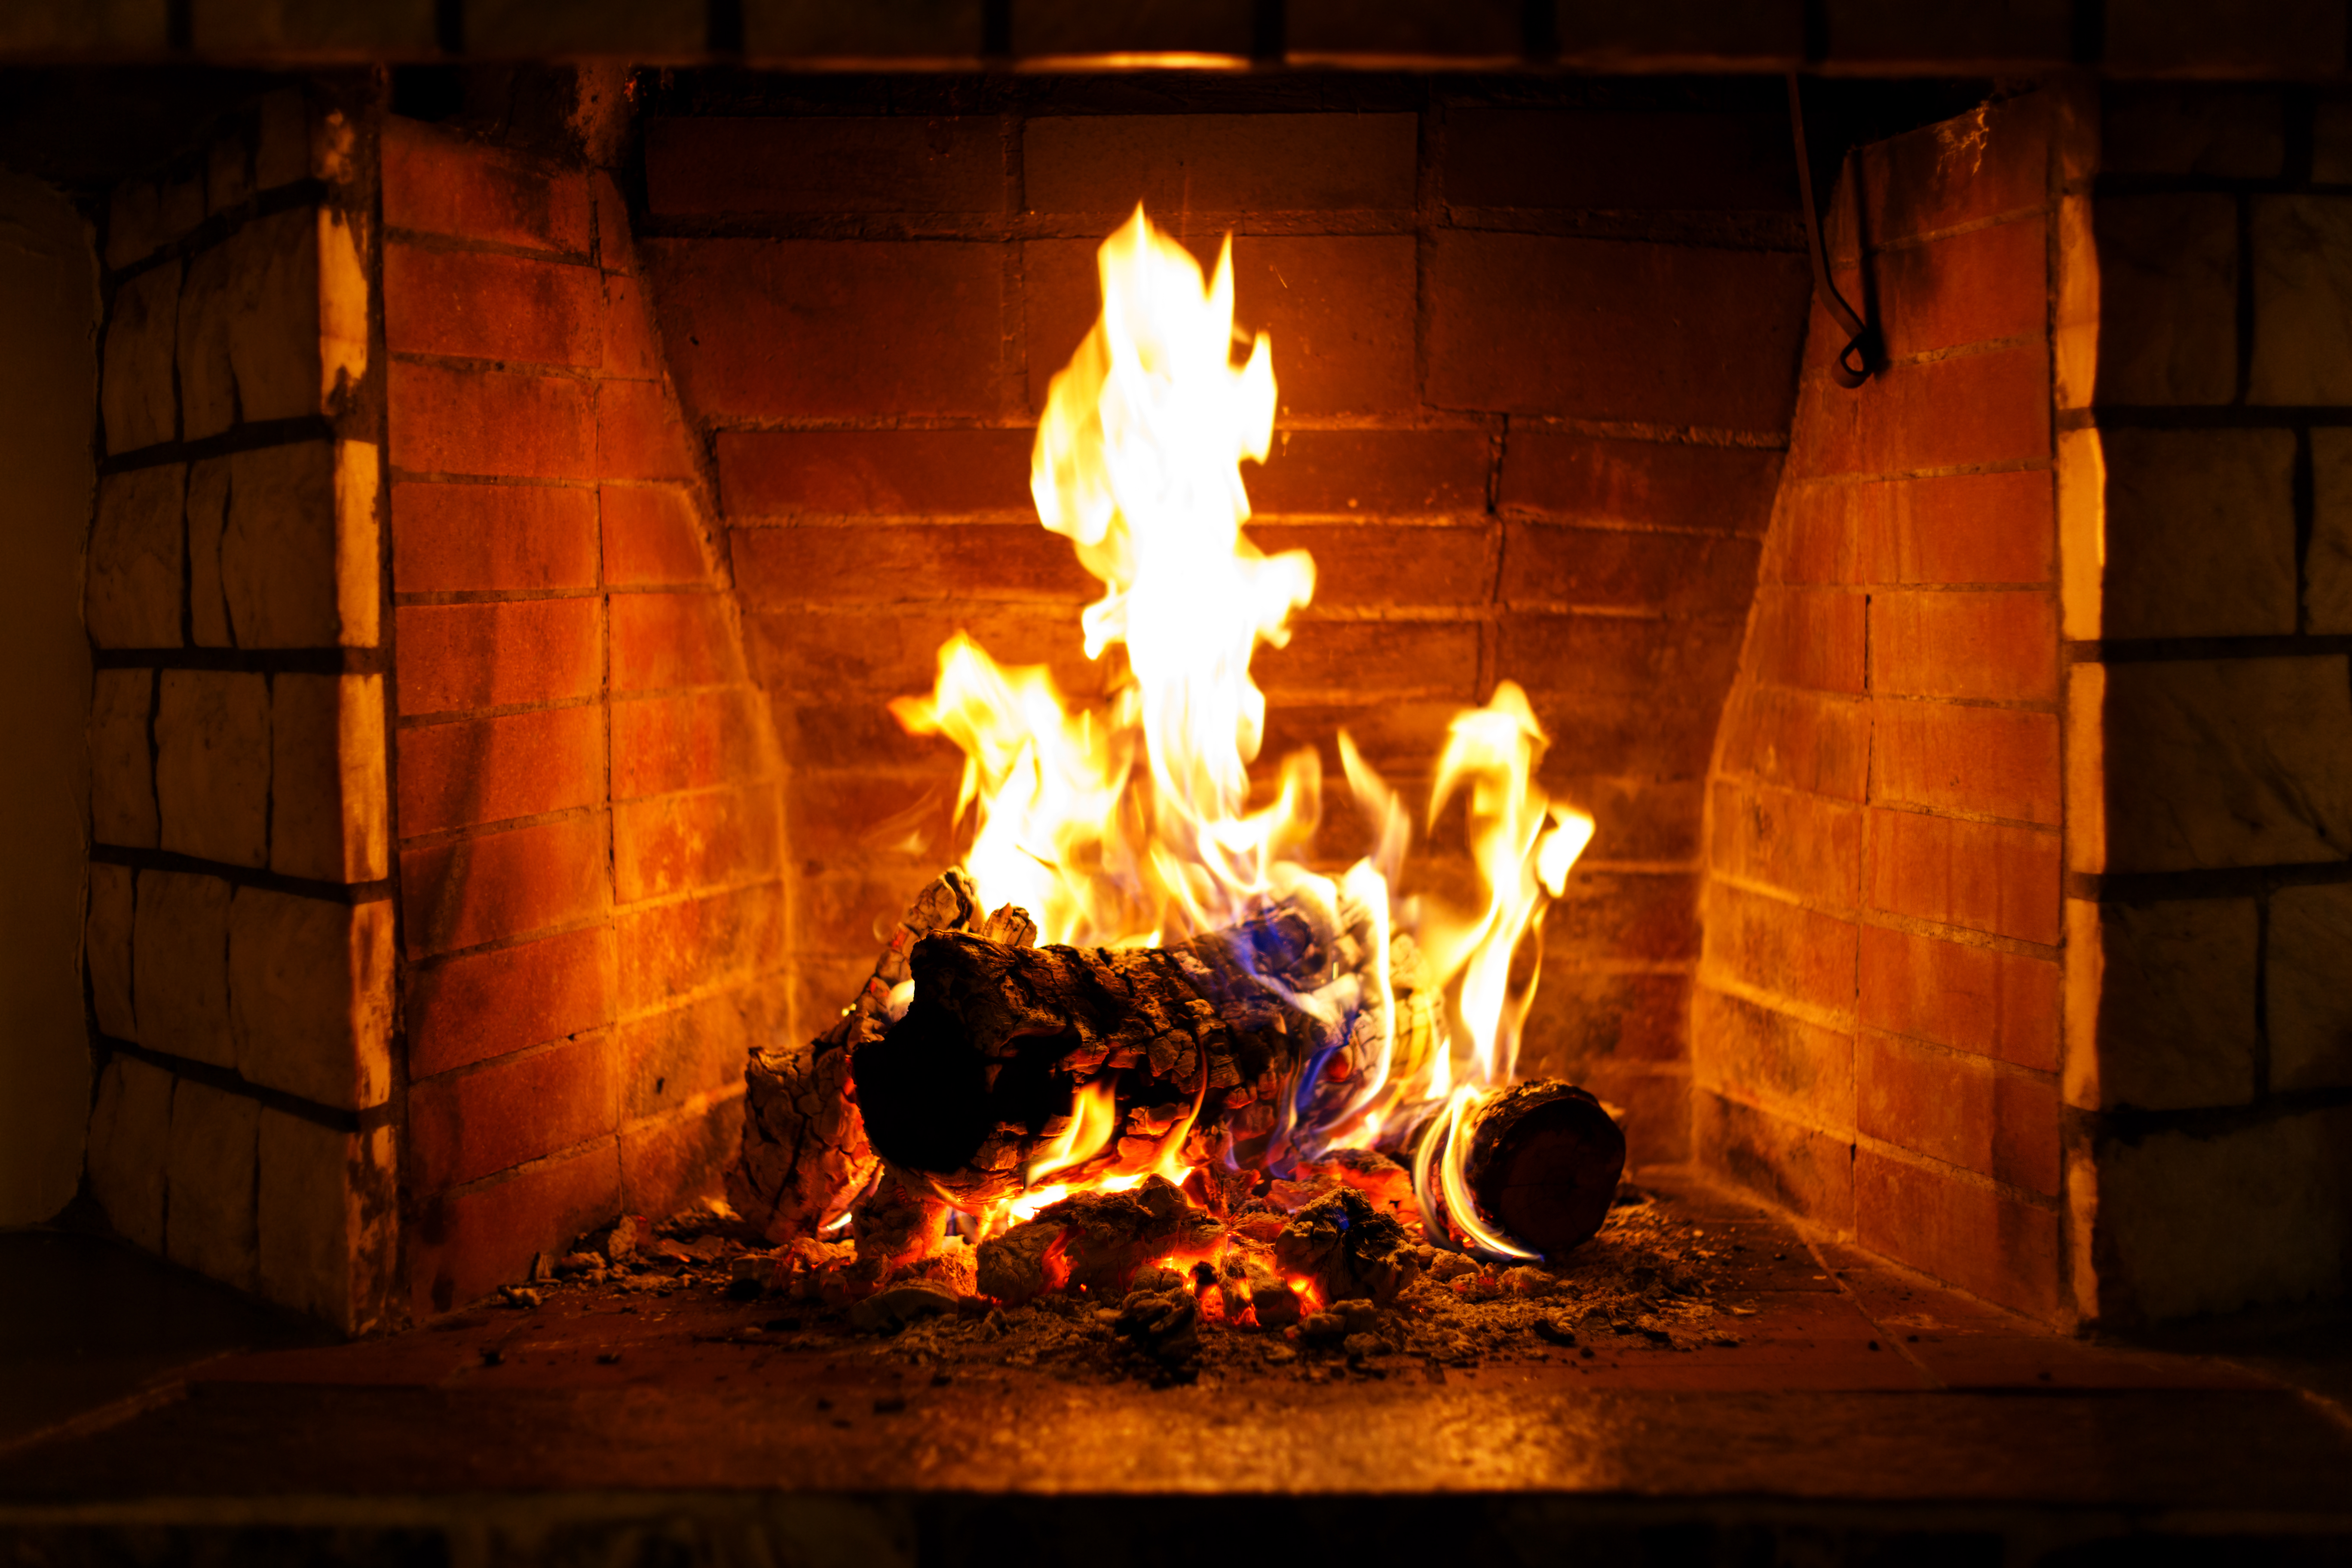 How To Get Fireplace Ash Smell Out Of The Room Home Guides Sf Gate